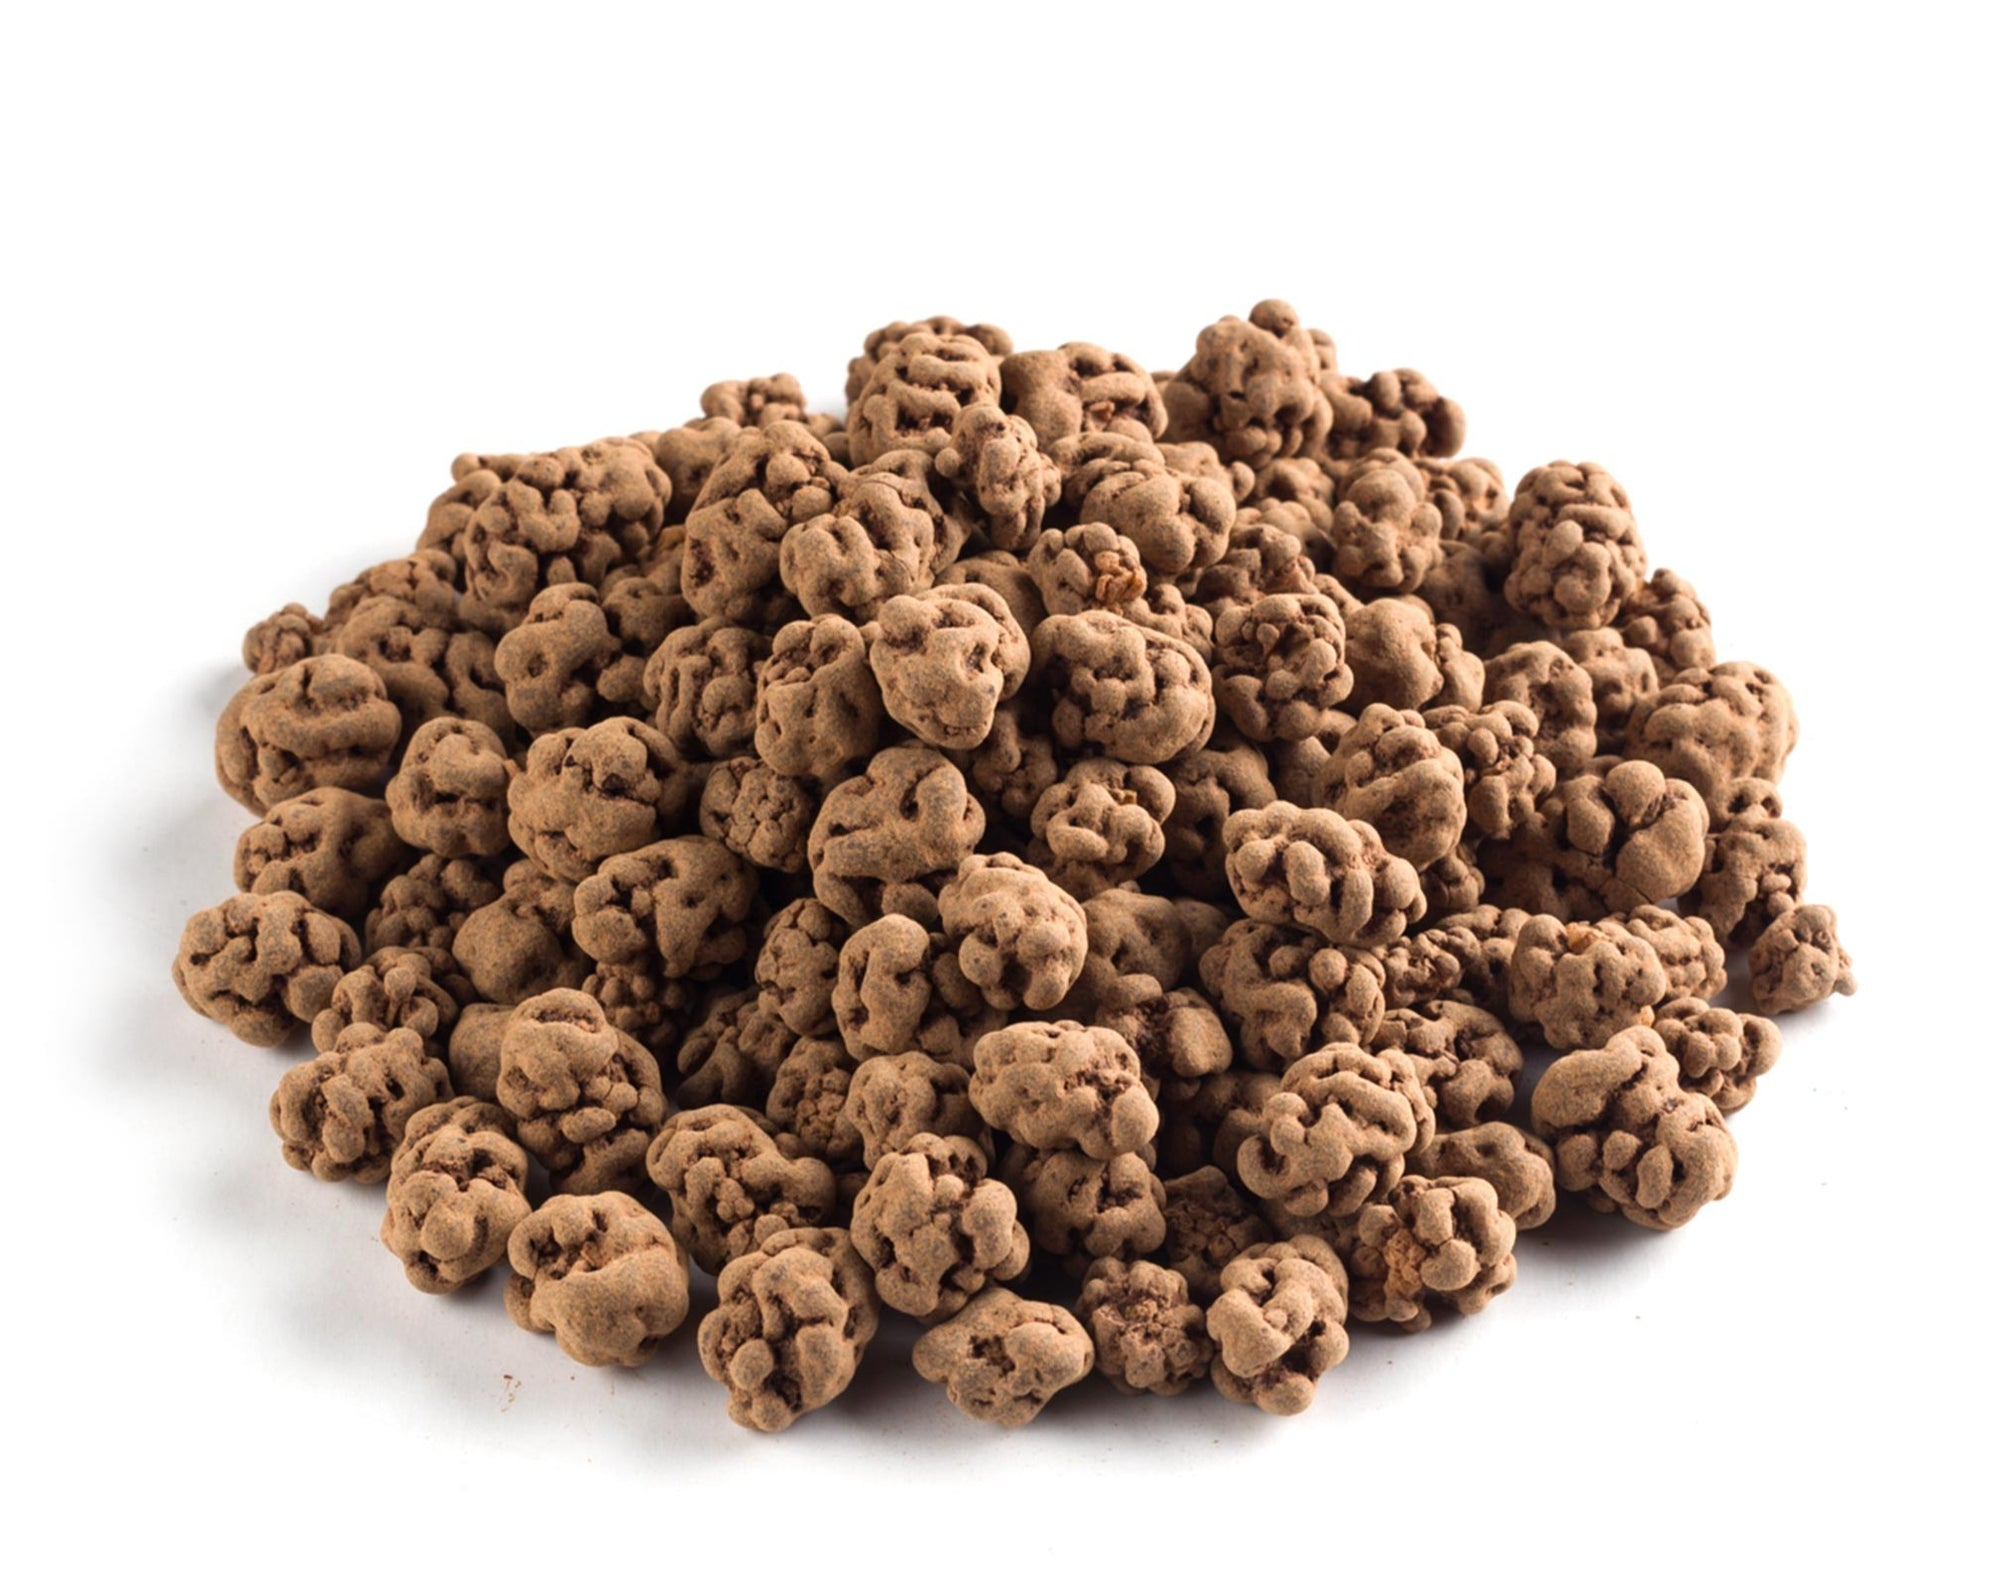 Raw Chocolate Mulberries 450g-1kg